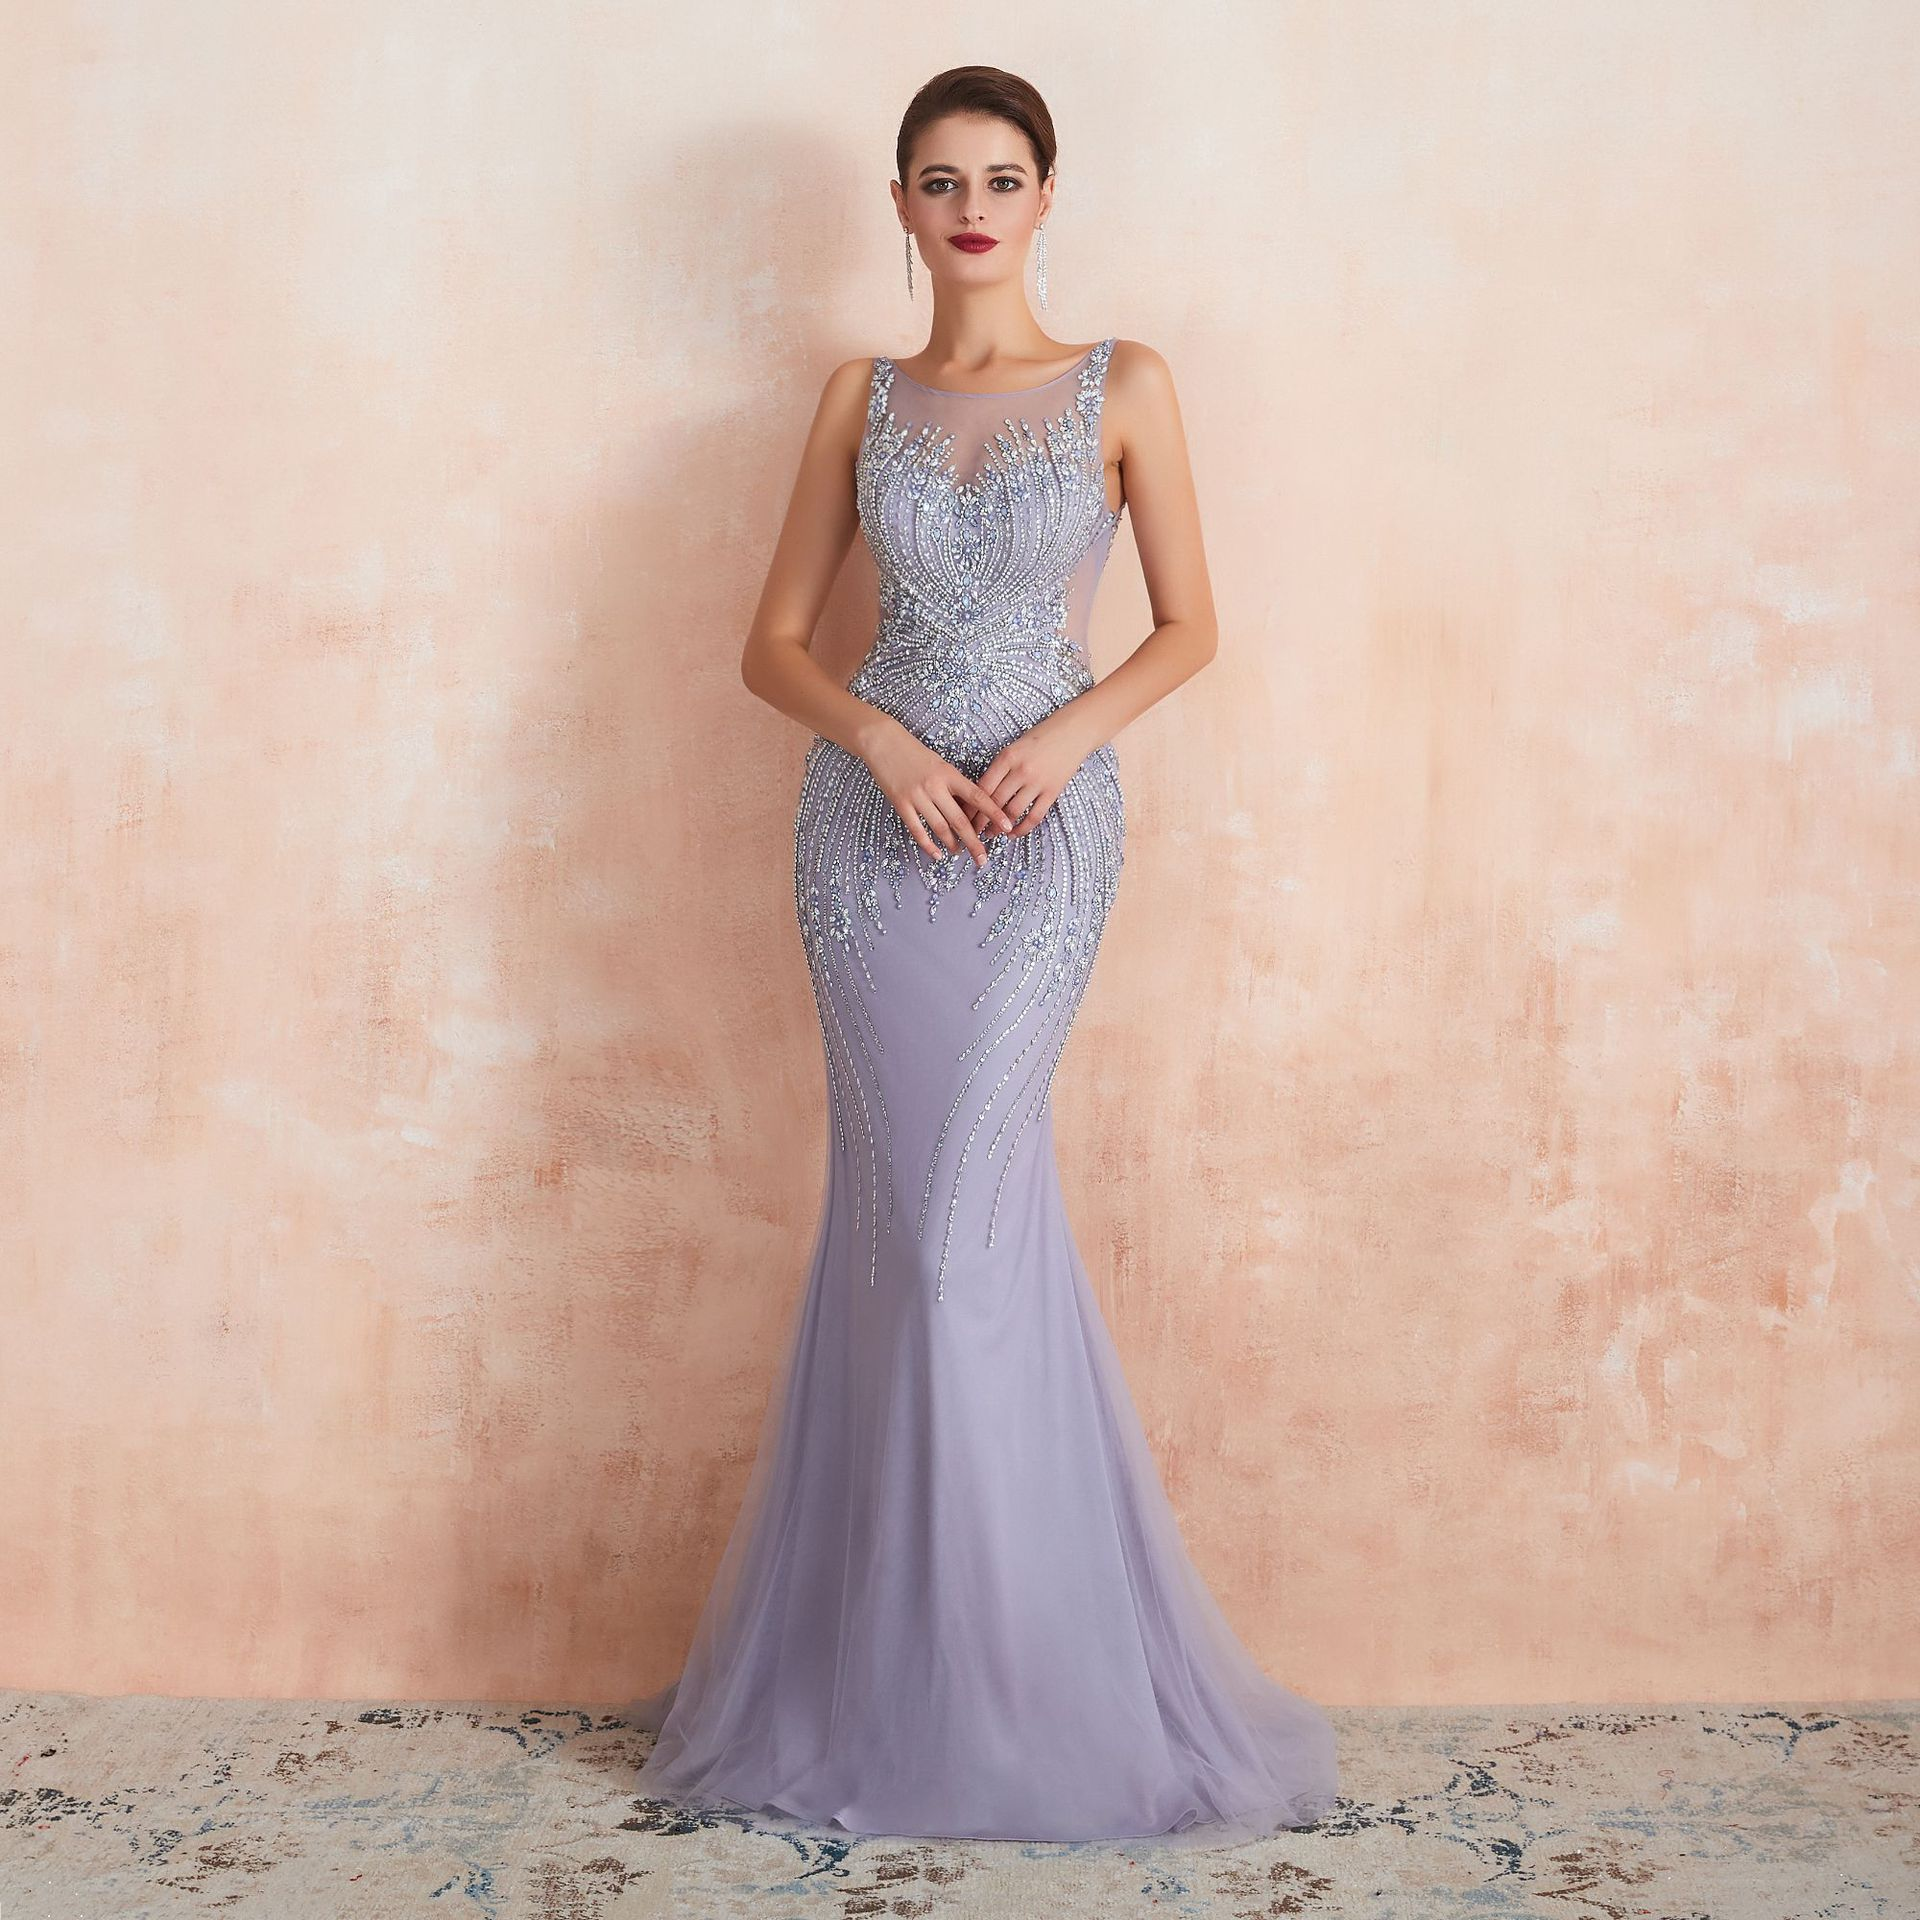 2020 Sexy Evening Dresses Scoop Neck Crystal Beaded Sparkly Light Purple Formal Party Dresses For Women Mermaid Prom Dress Long